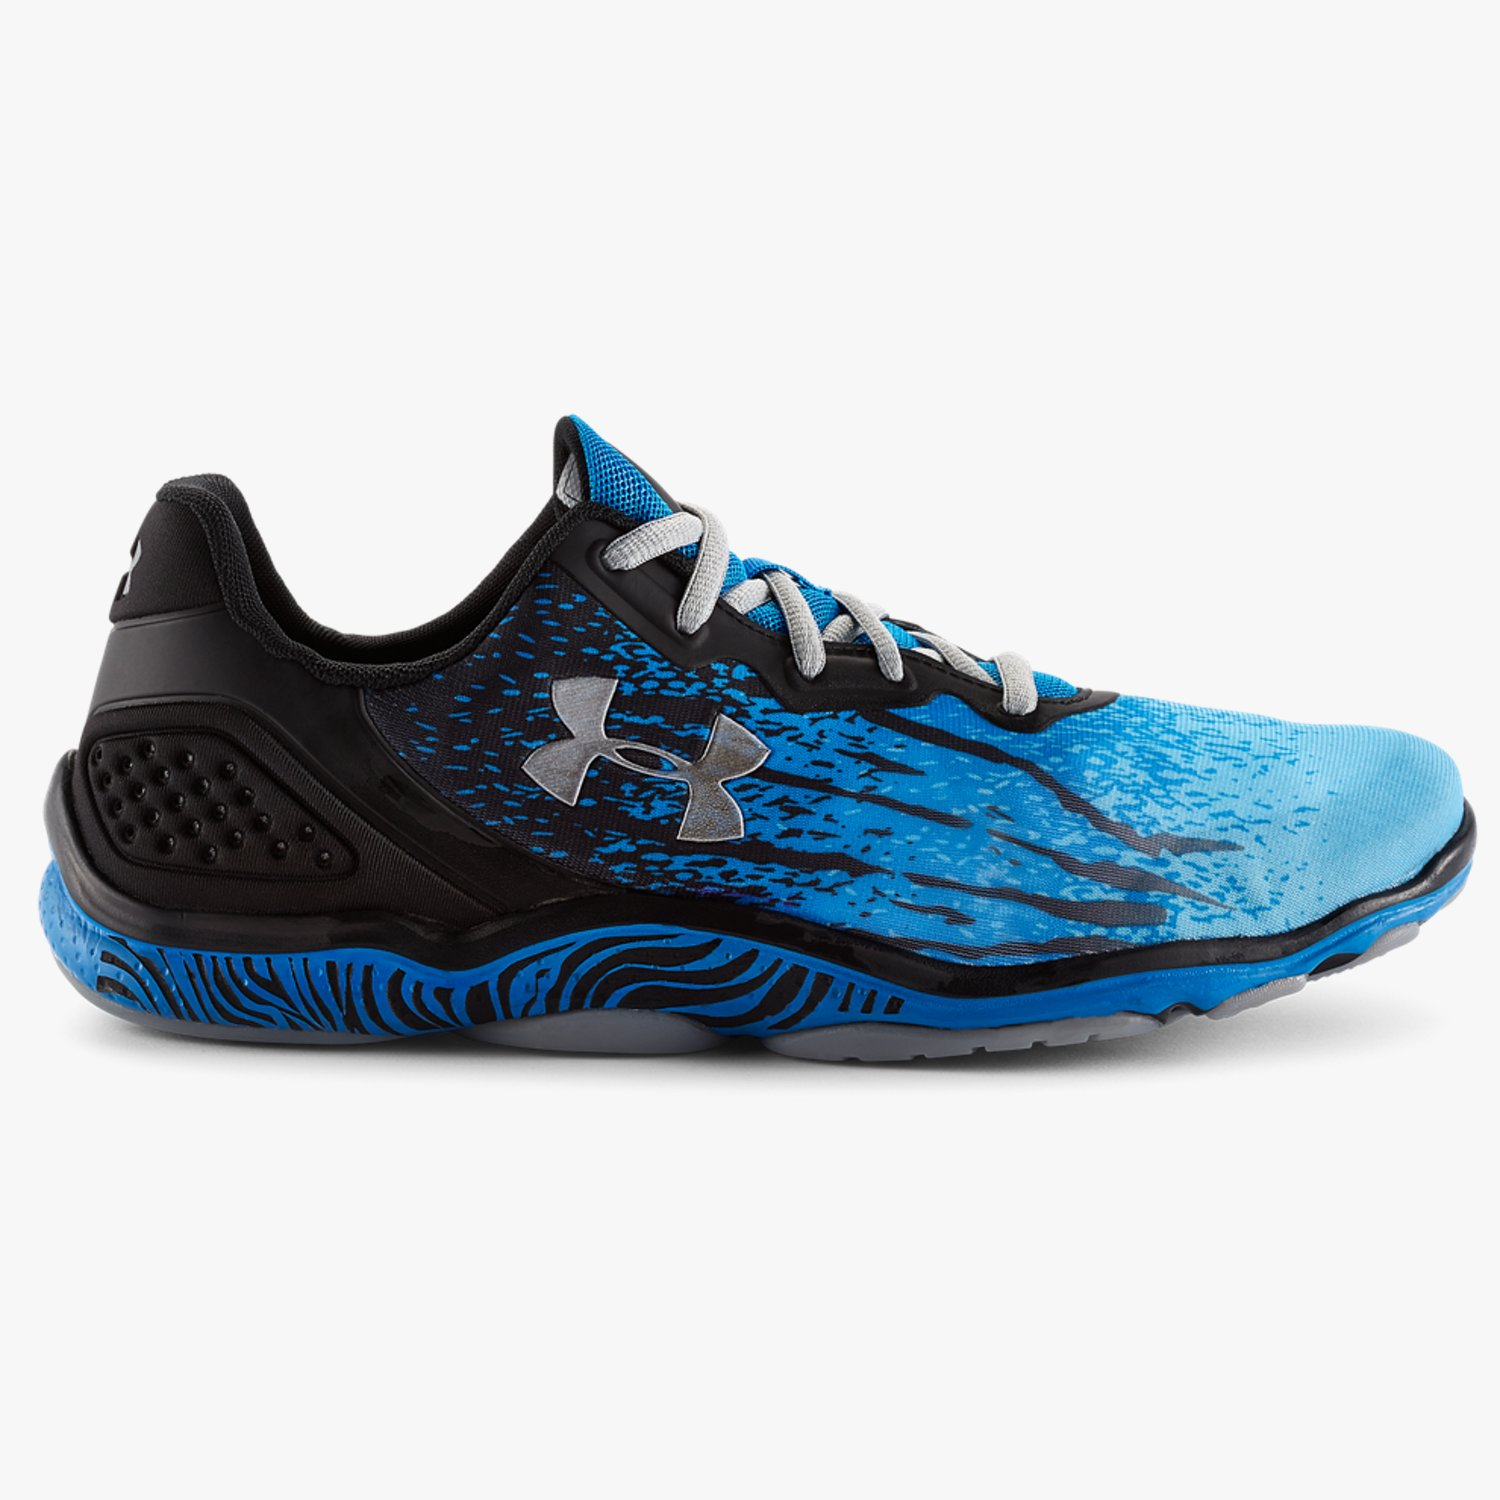 Under Armour UA Micro G Sting Training Shoes Blue Jet/Island Blue/Black-30